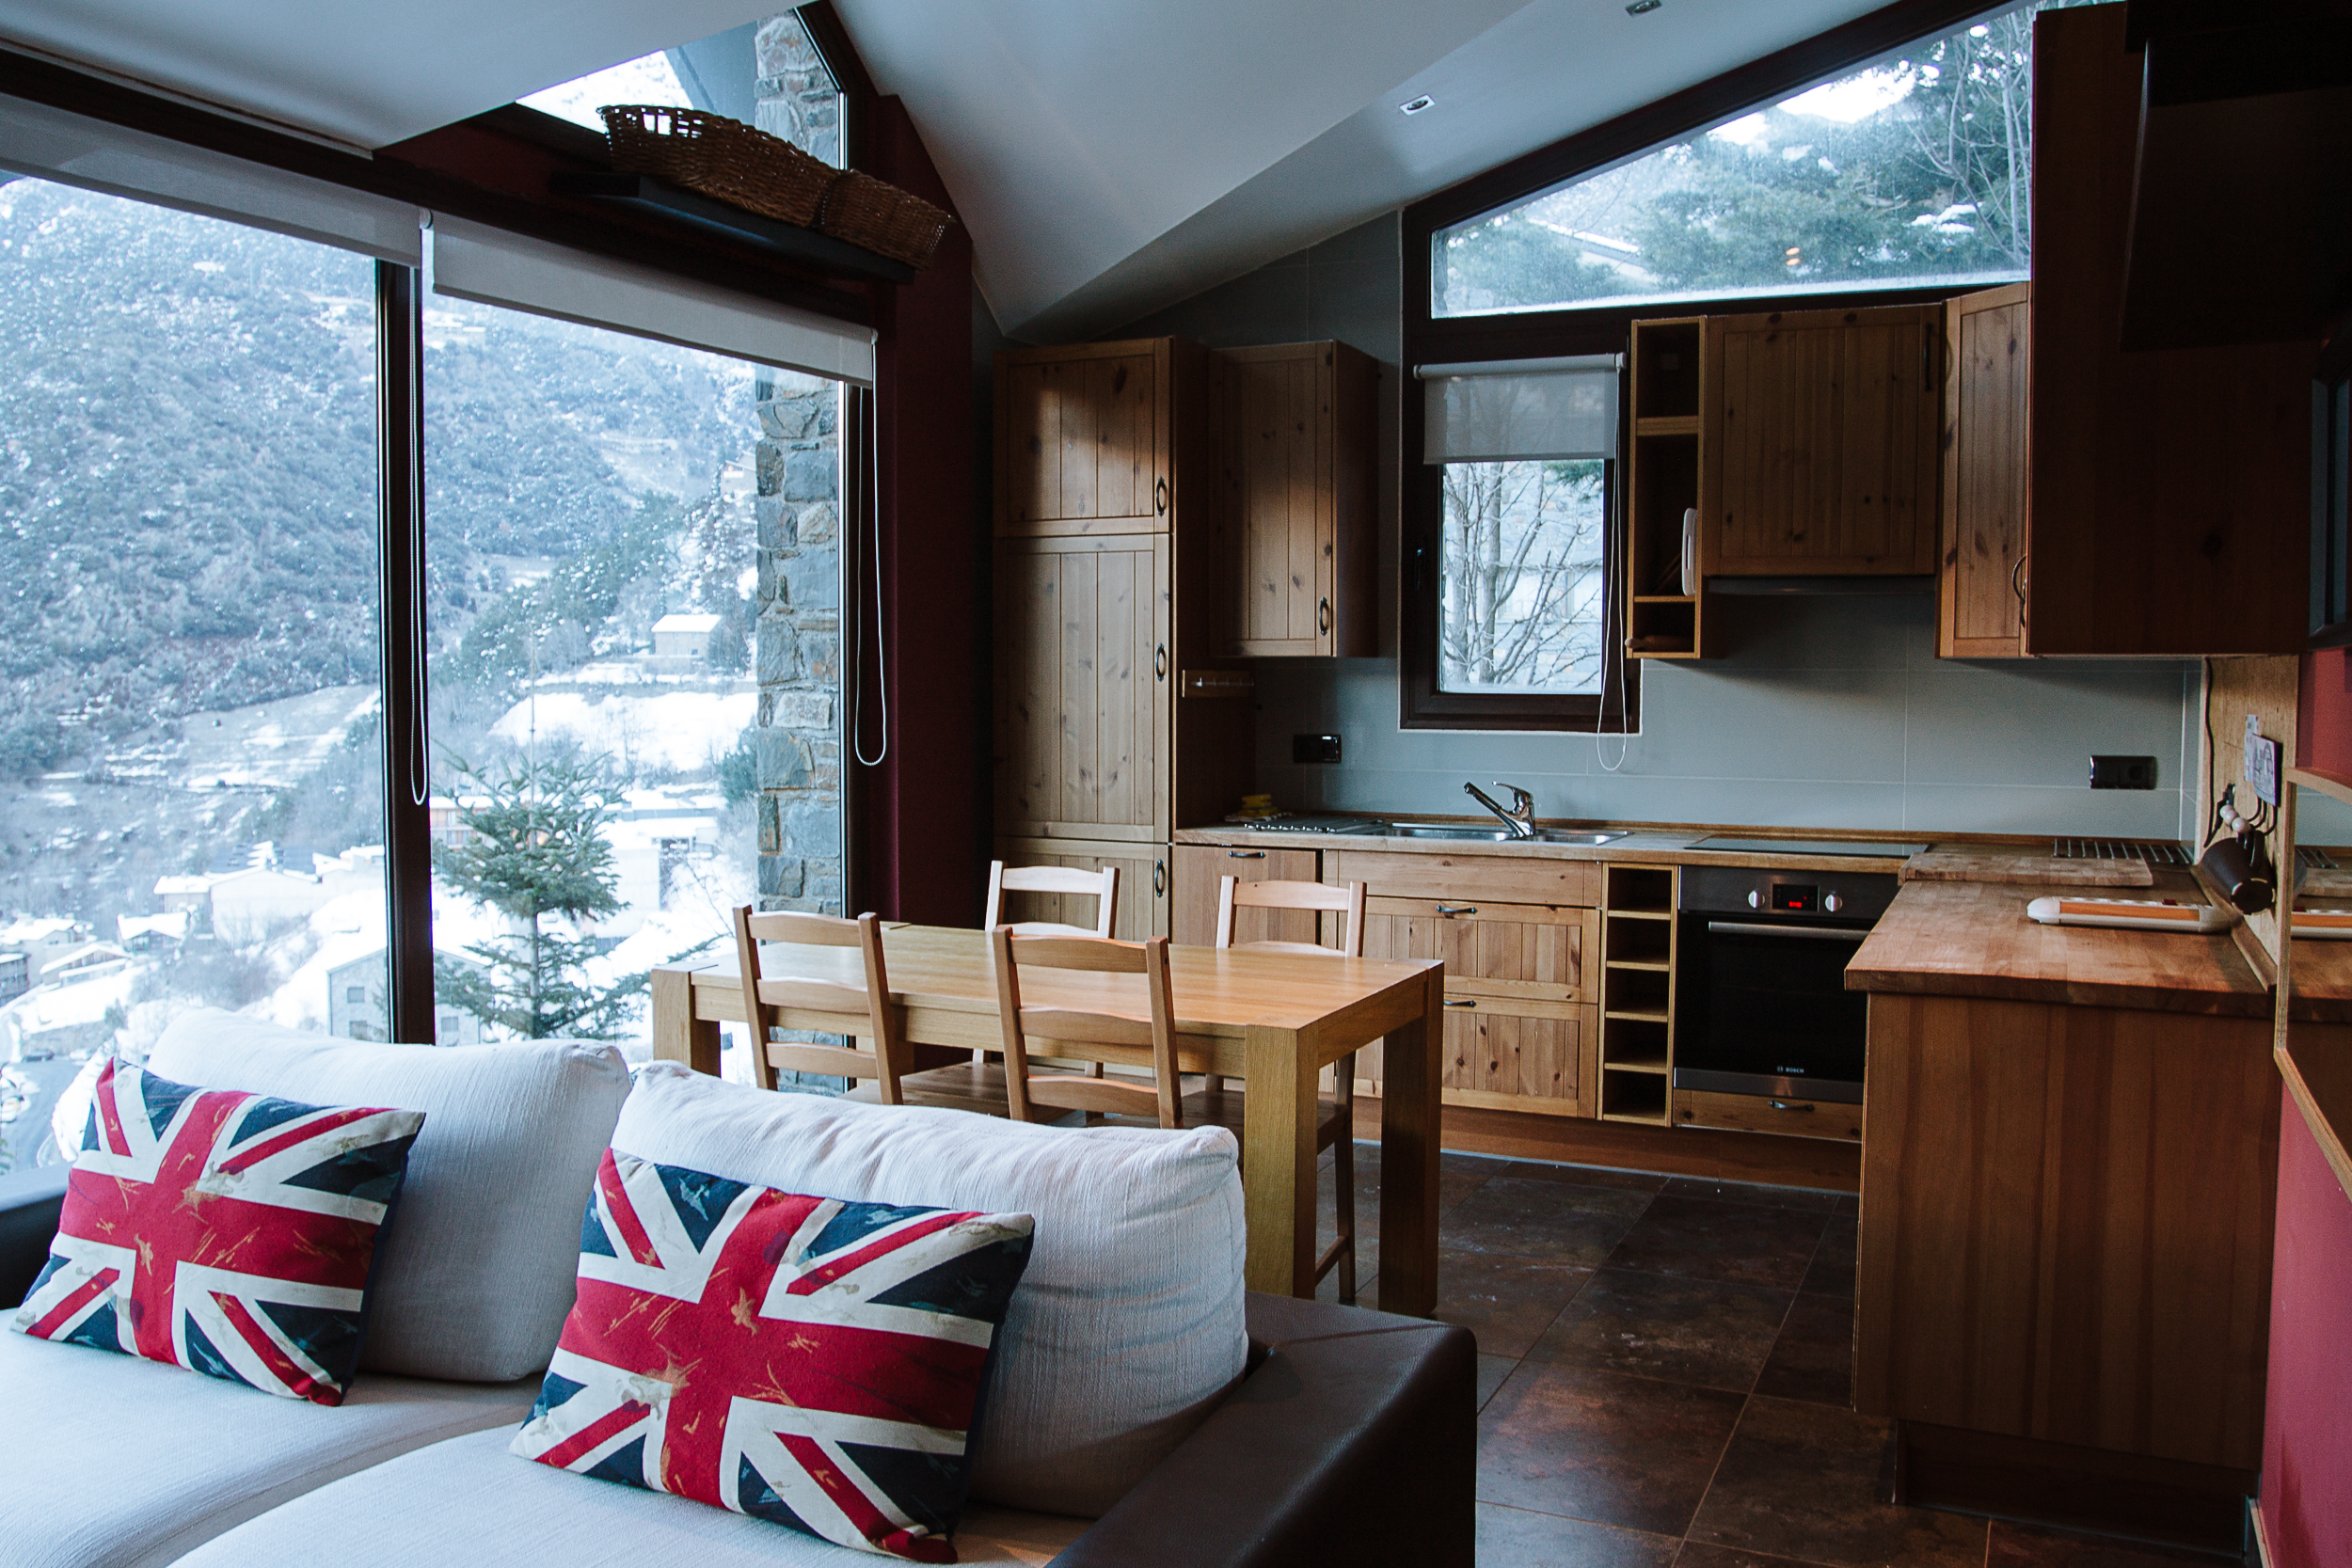 A huge thank you to the host Victor for providing accommodation during our stay in Andorra. Link to Casita en la montaña Airbnb profile in the footer.